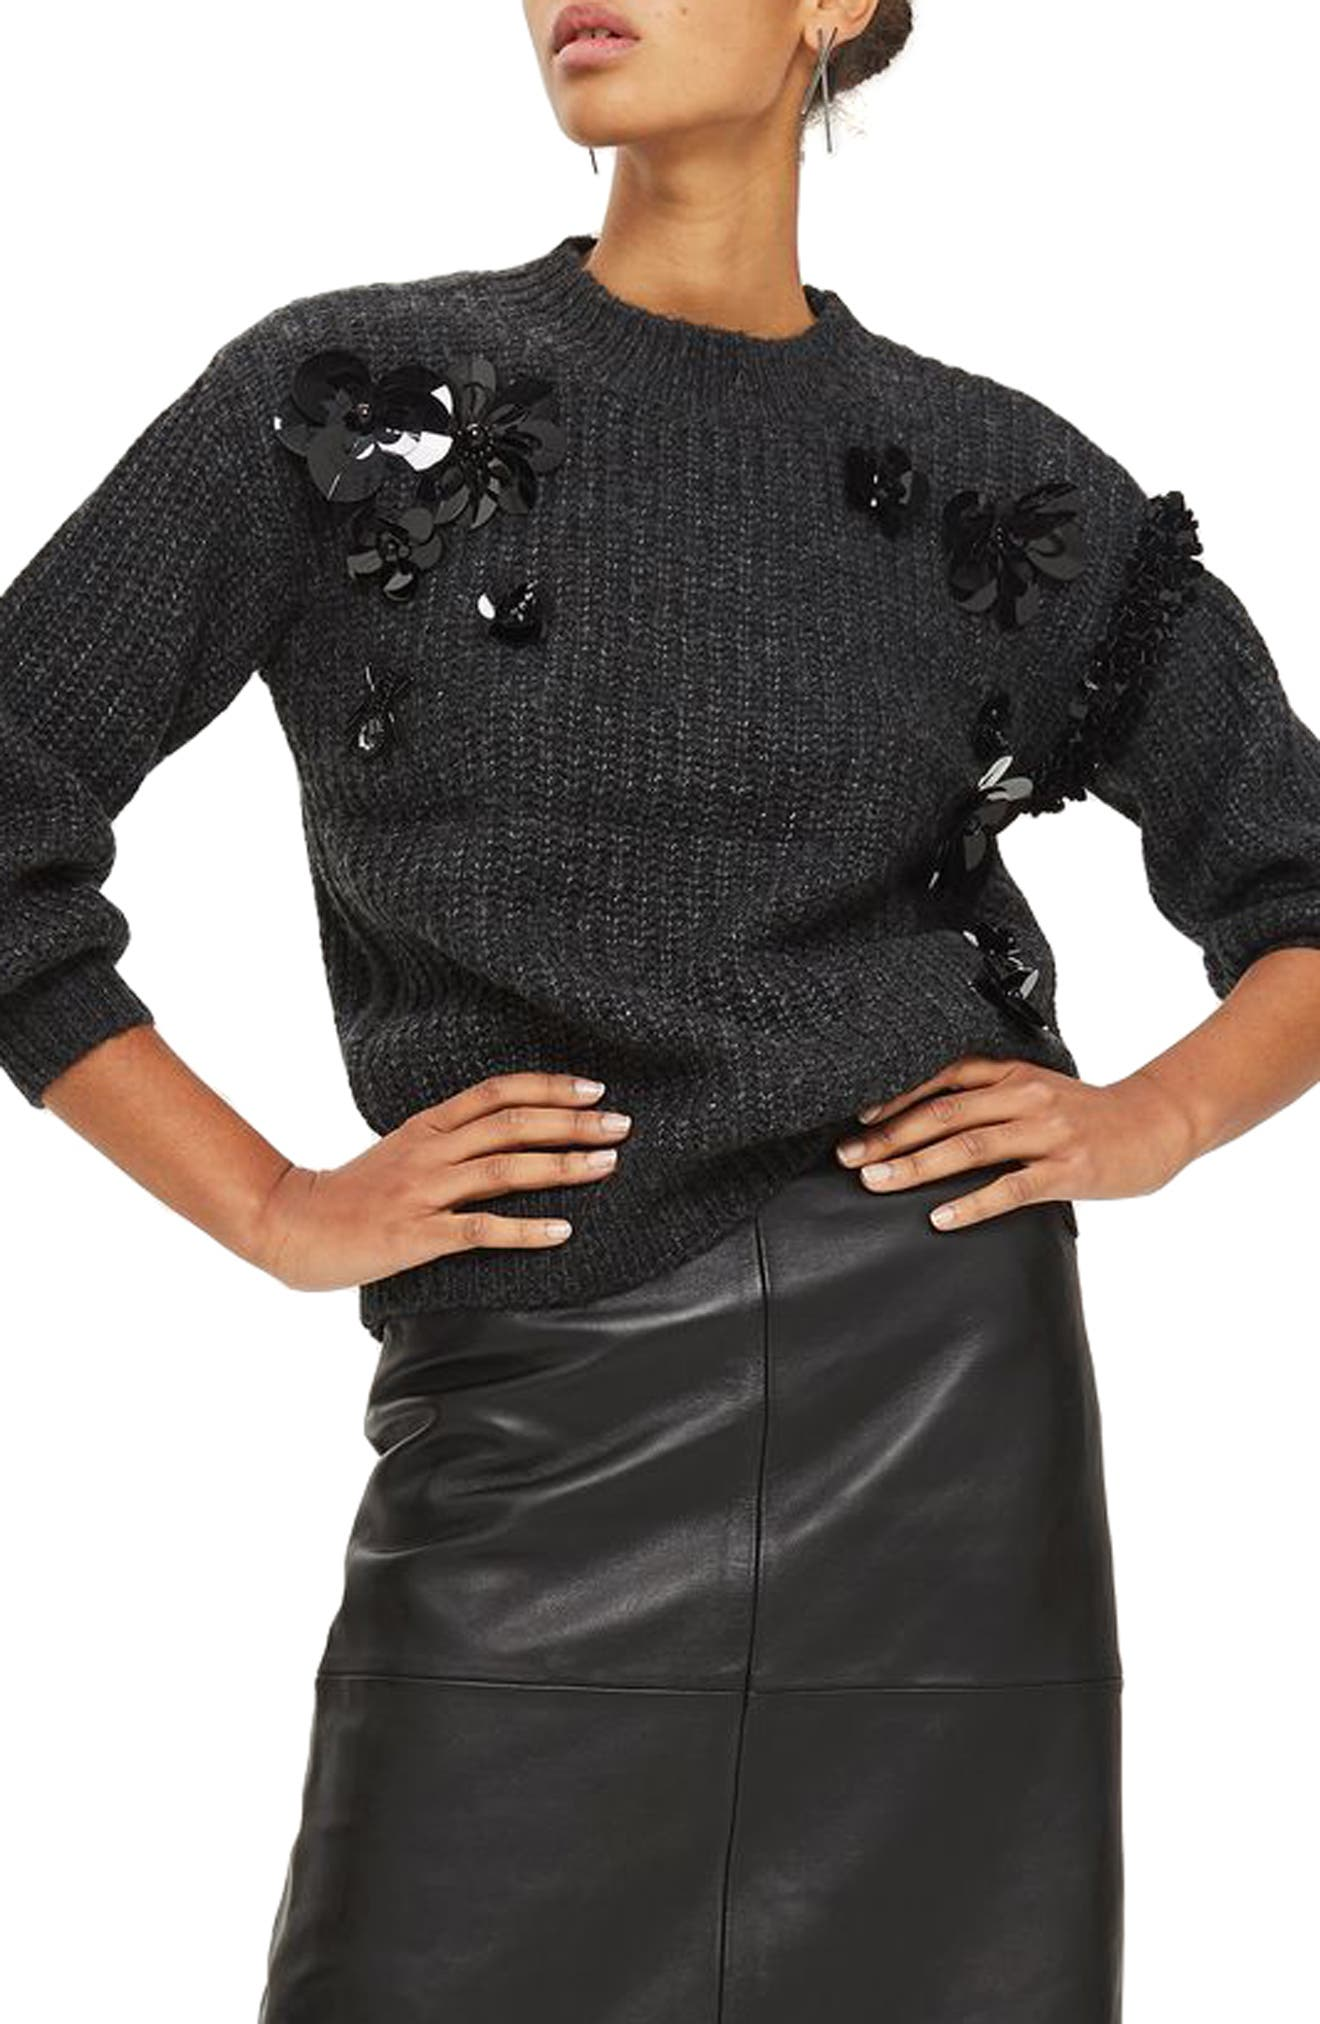 Cluster Embellished Sweater,                             Main thumbnail 1, color,                             021